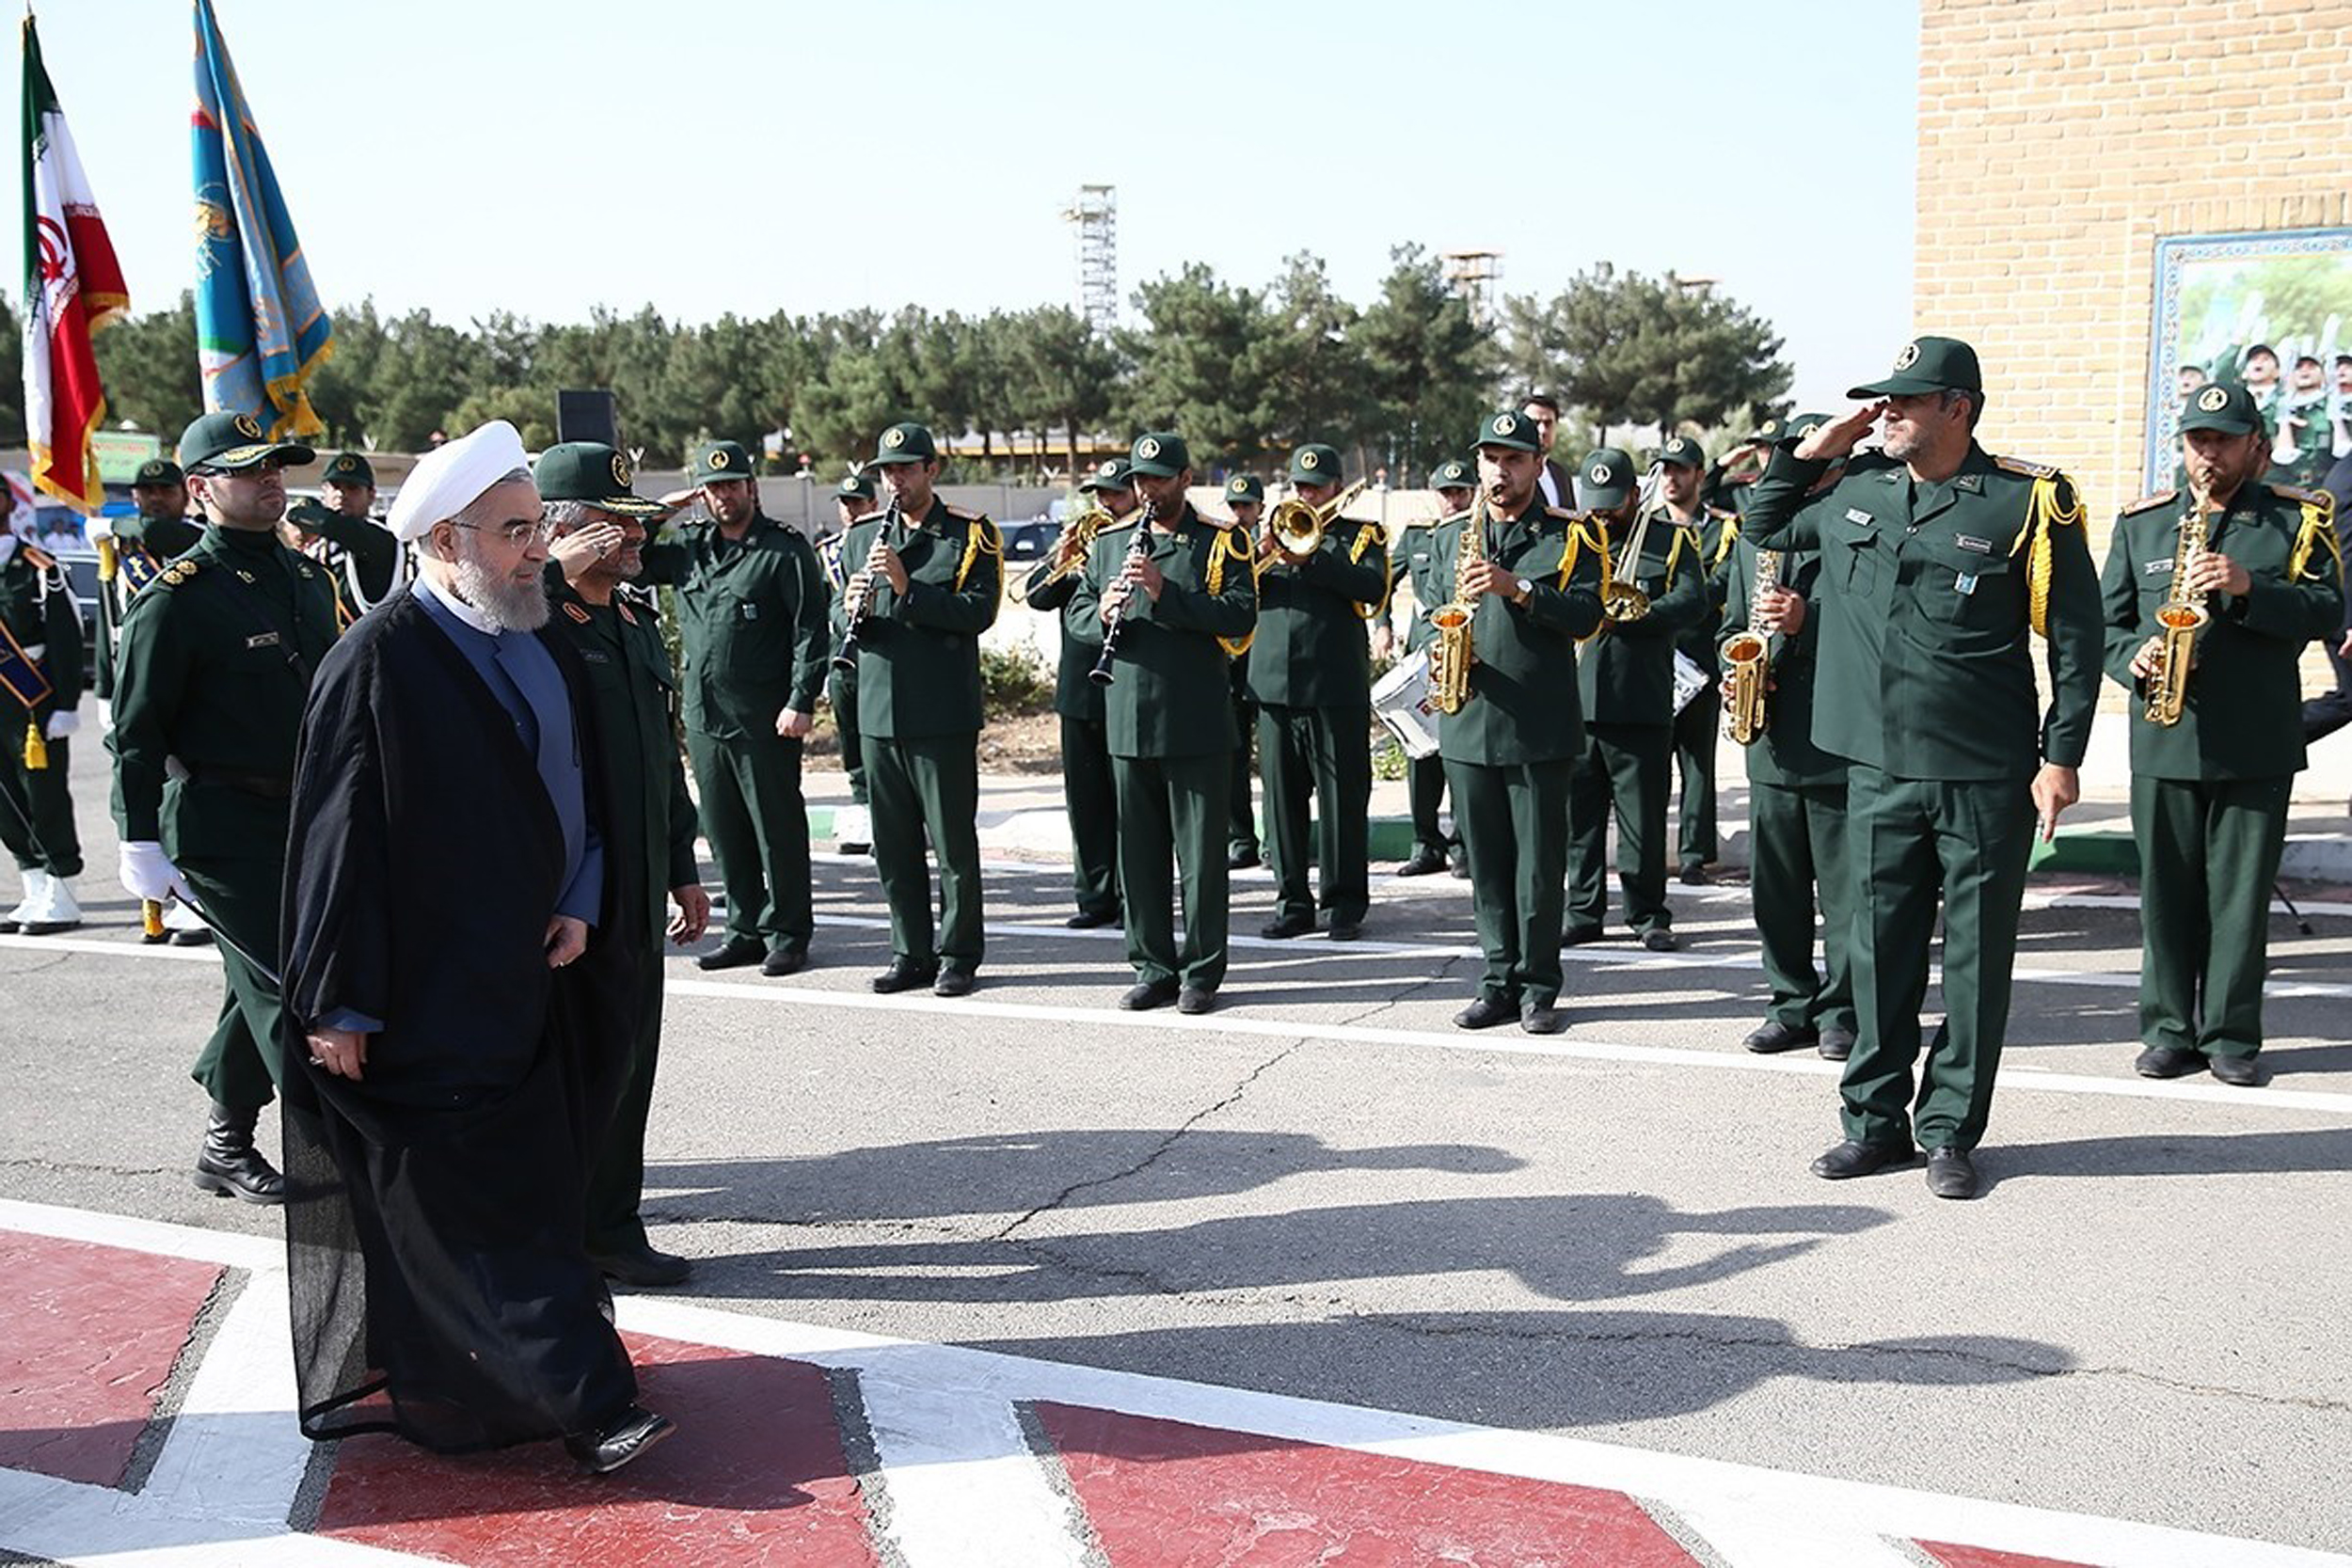 Image: Iranian President Rouhani Attends Gathering of IRGC Commanders